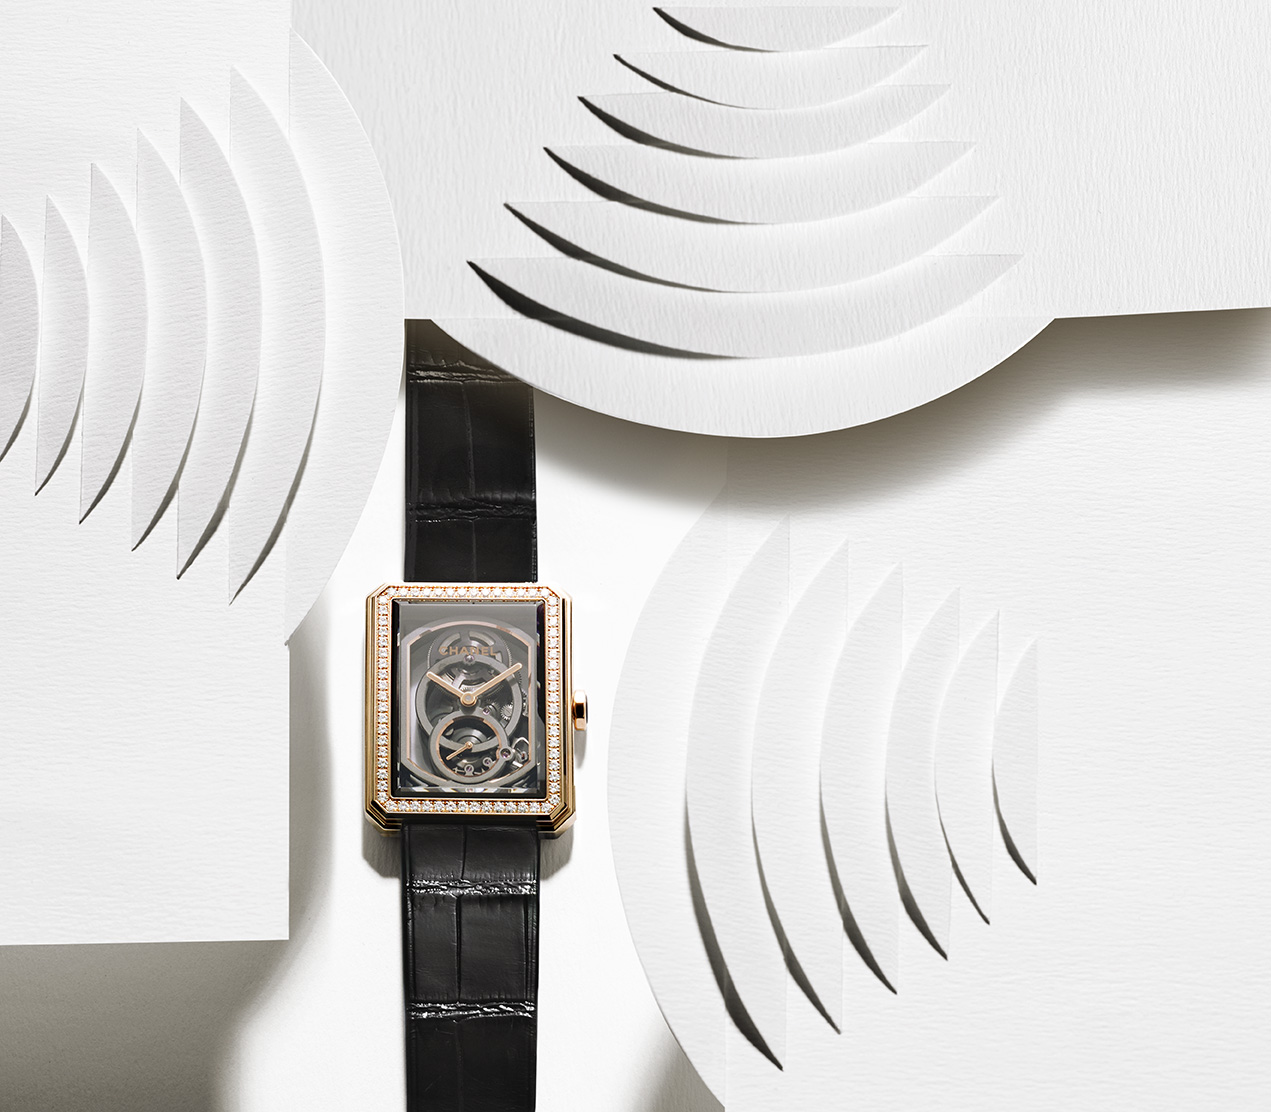 LHONORE_Chanel_nicolas_mingalon_valerie_paumelle_agent_still_life_photographer_nature_morte_jewelry_watches.jpg